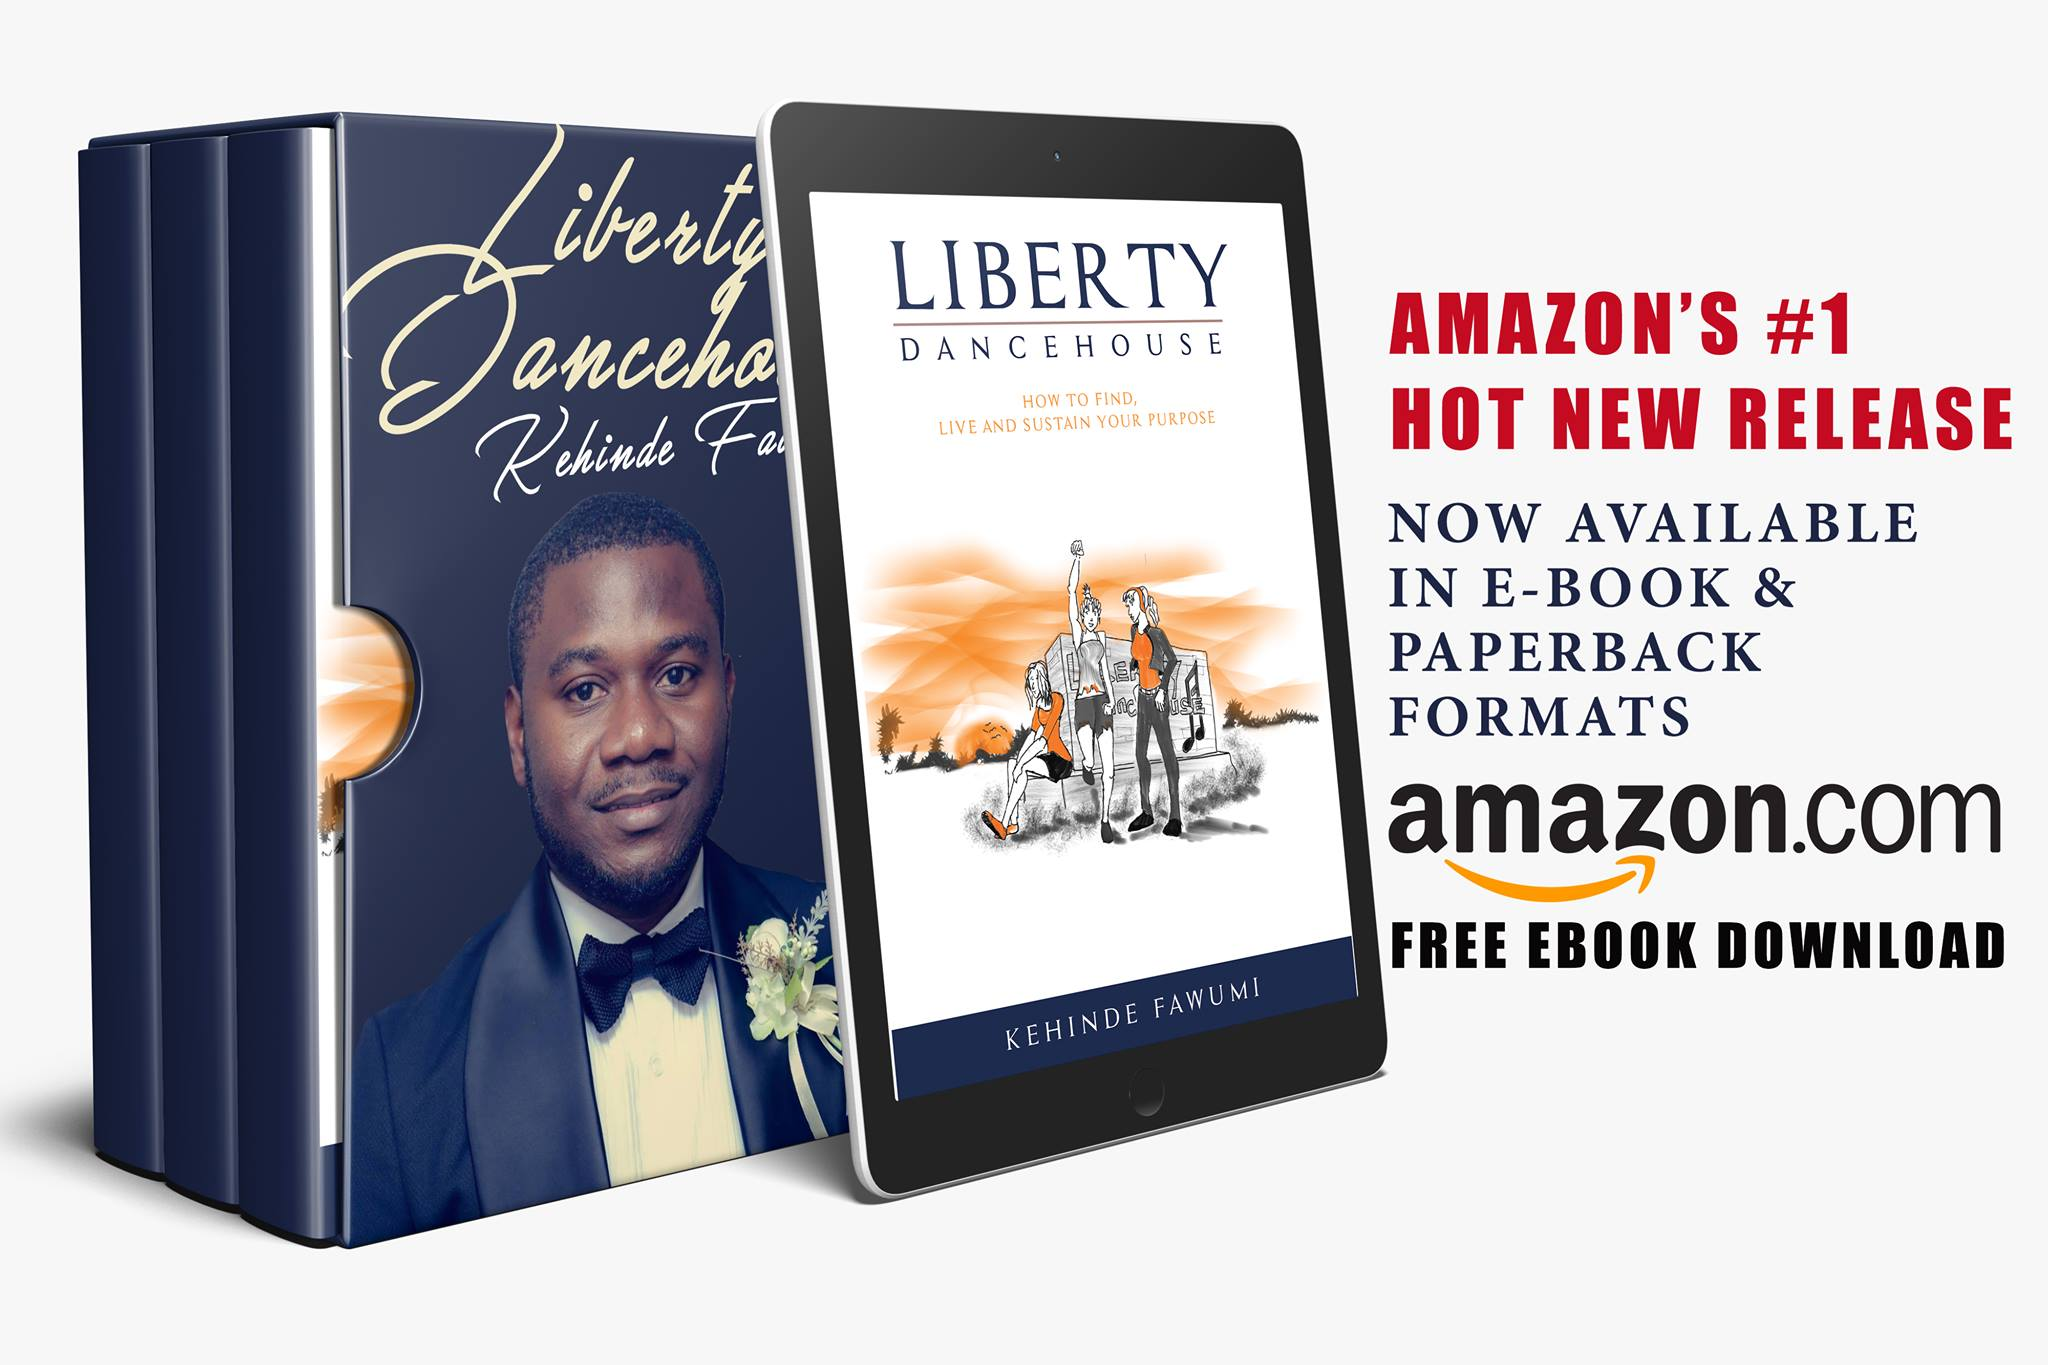 Amazon's #1 Hot New Release – Liberty Dancehouse! <br> <a href='https://www.amazon.com/dp/B075NSVTM4' title='Liberty Dancehouse' target='_blank'>Download FREE Book Now!</a>